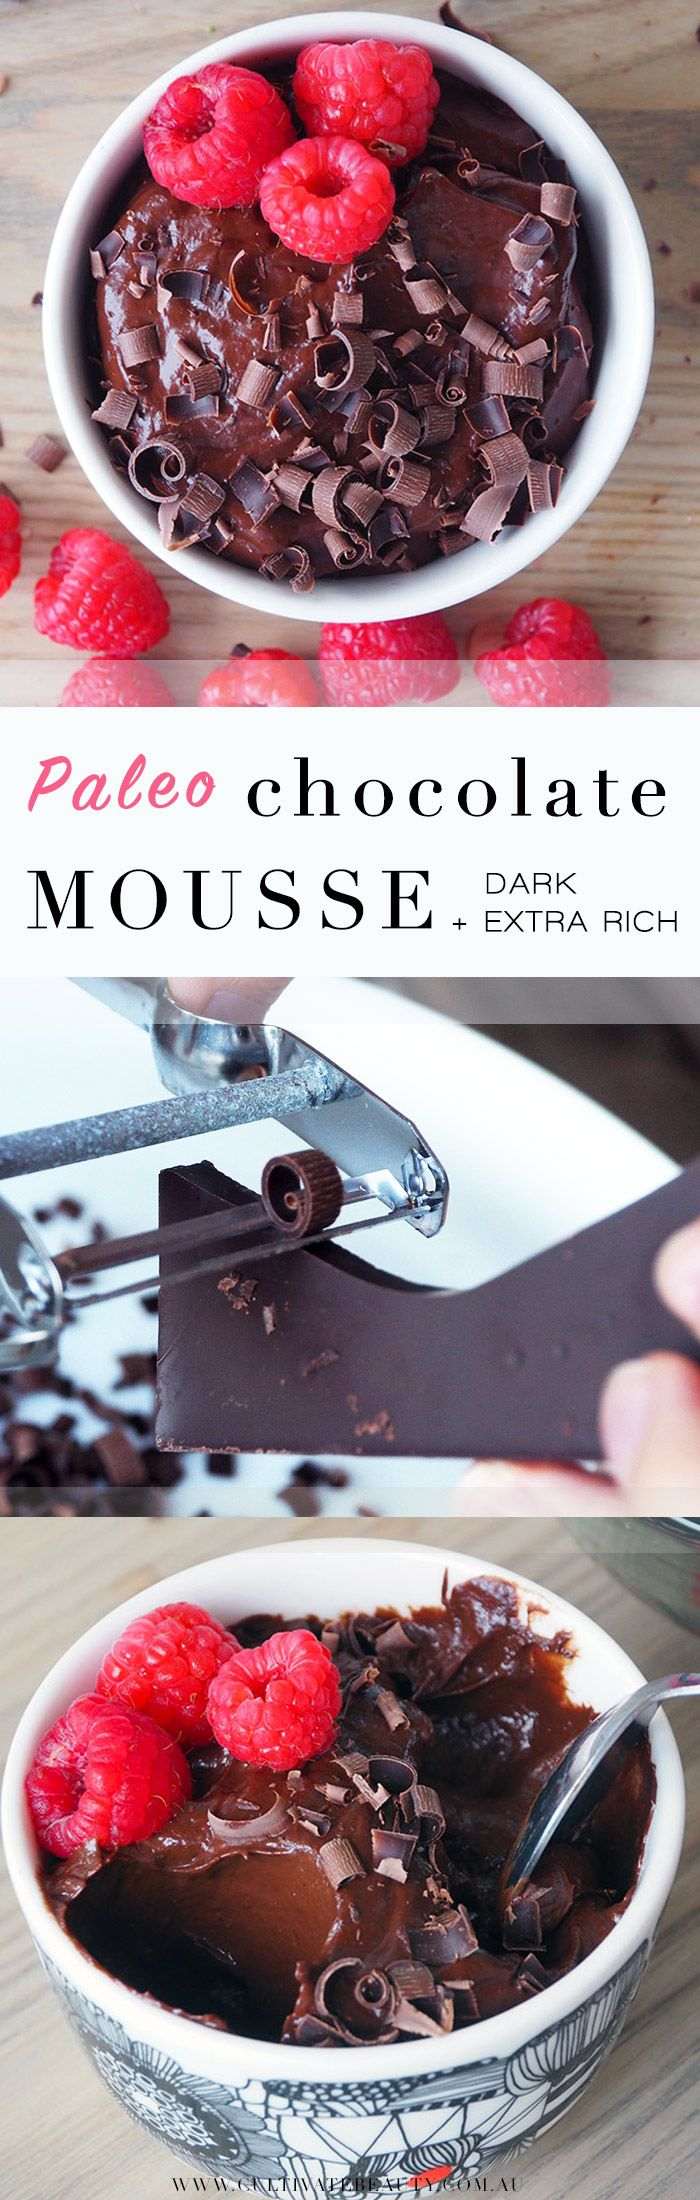 Thankfully, we discovered it's possible to make a delicious chocolate mousse that isn't laden with sugar and cream. This mousse gets it thickness from banana and avocado – don't knock it 'til you've tried it – and its sweetness from the banana and honey. Plenty raw cacao powder also gives this mousse a rich, chocolate flavour.